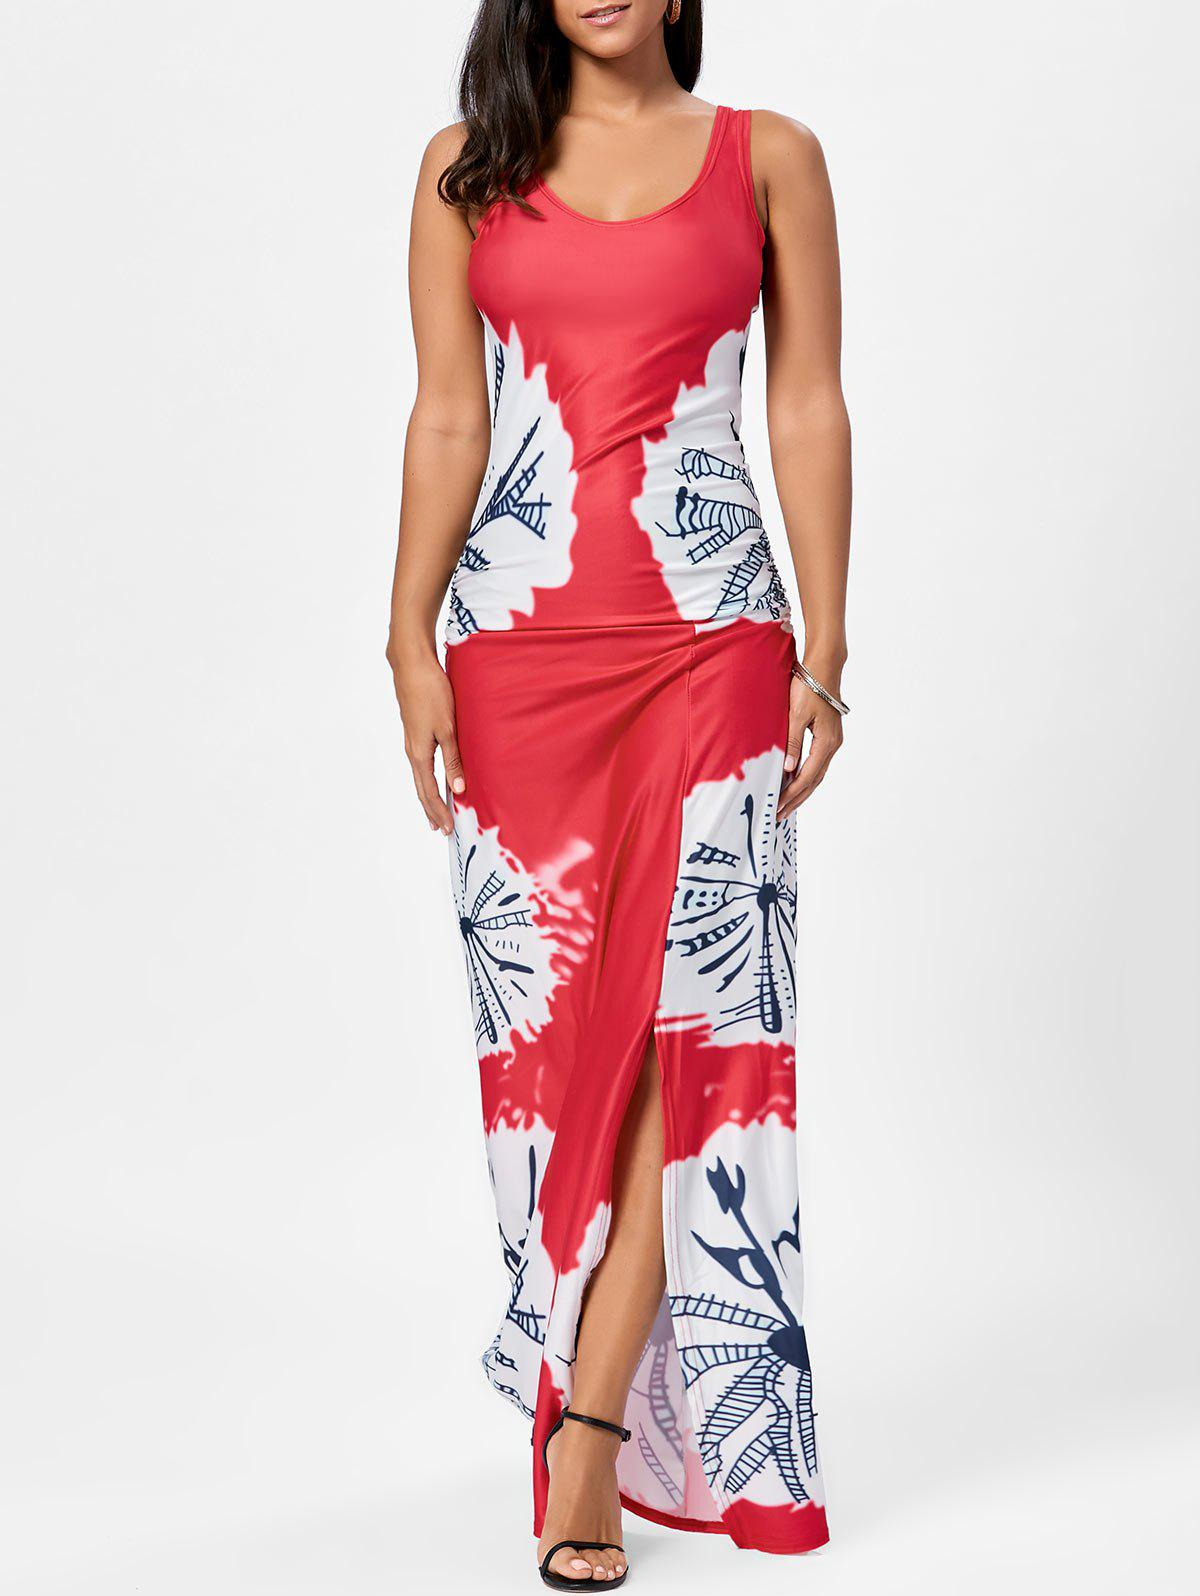 Long Slit Tie Dye Tank Dress - Rouge L